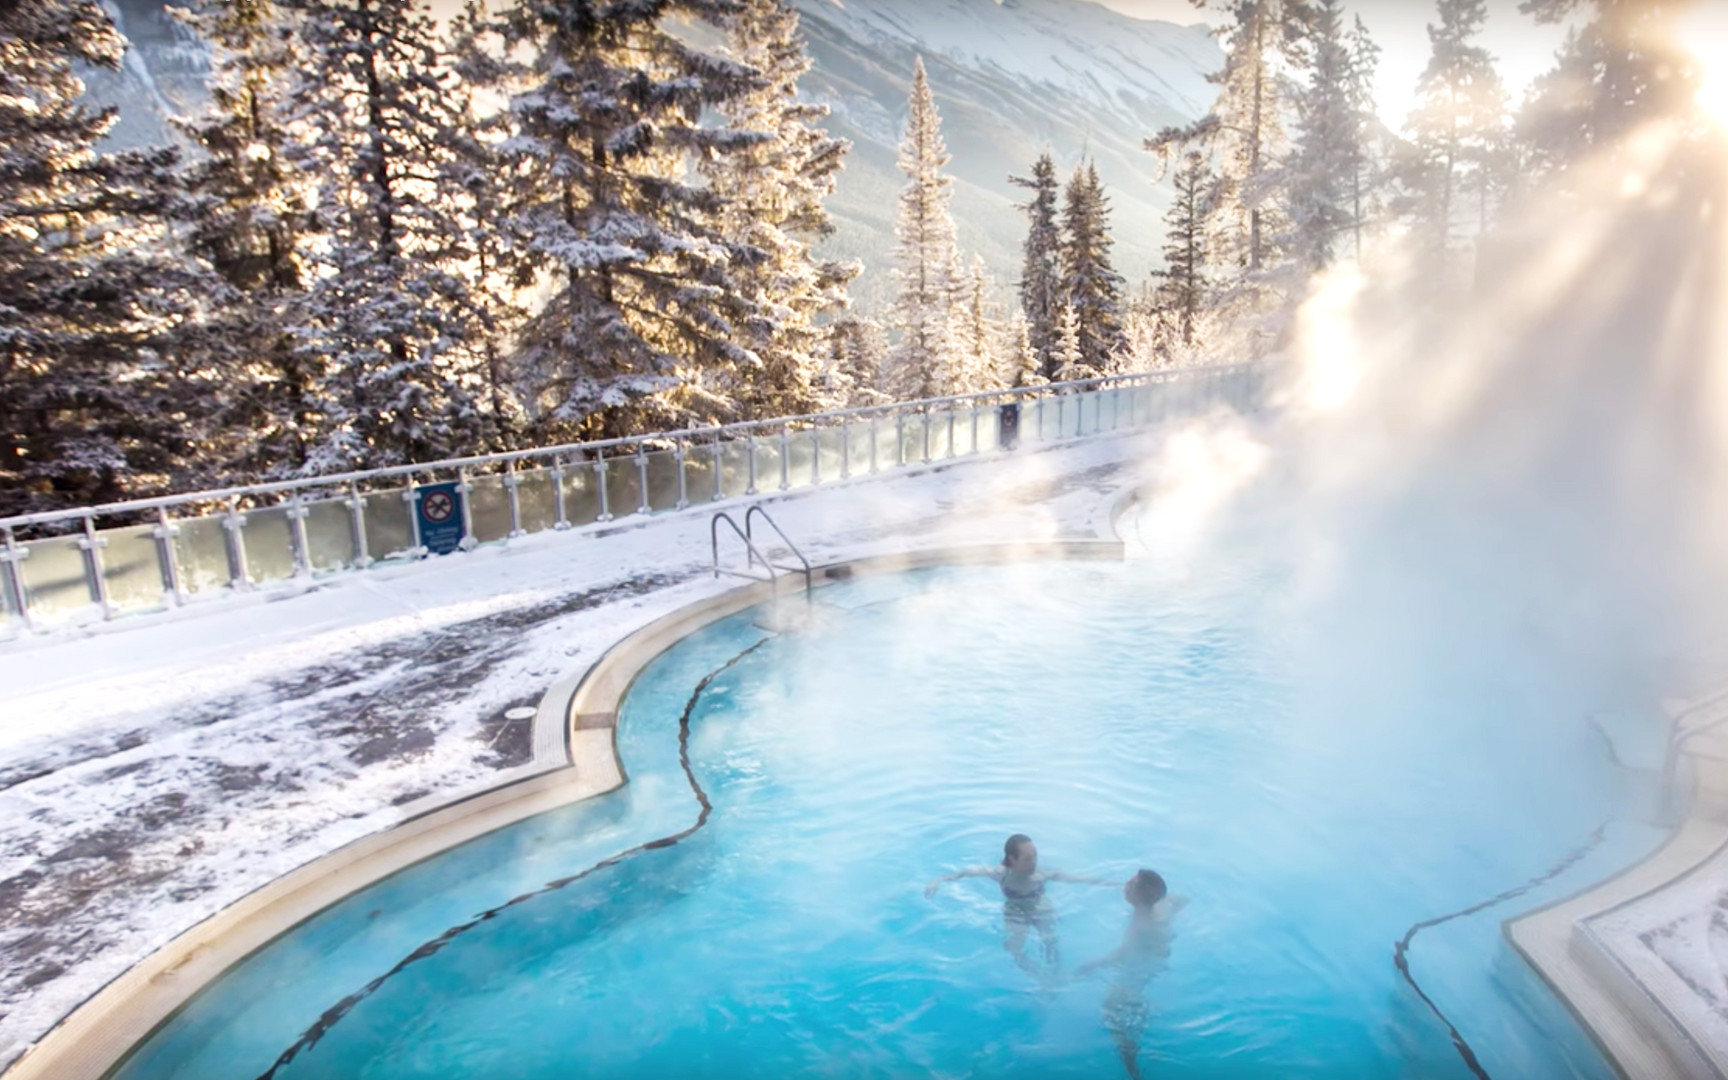 Banff Springs Hotel Hot Springs Pool_edi